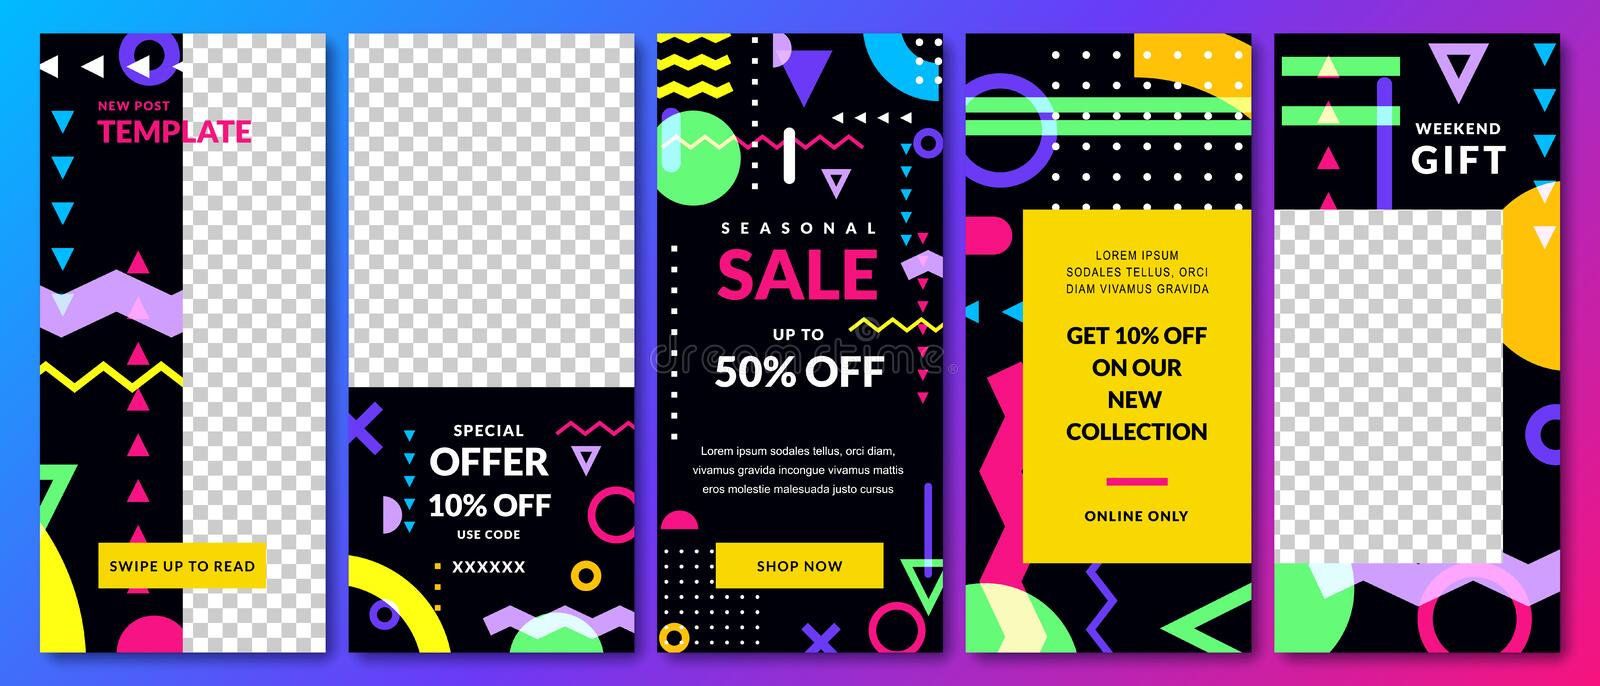 Stories vector template for Instagram social network. Trendy design for fashion sale and special offer flyers royalty free illustration